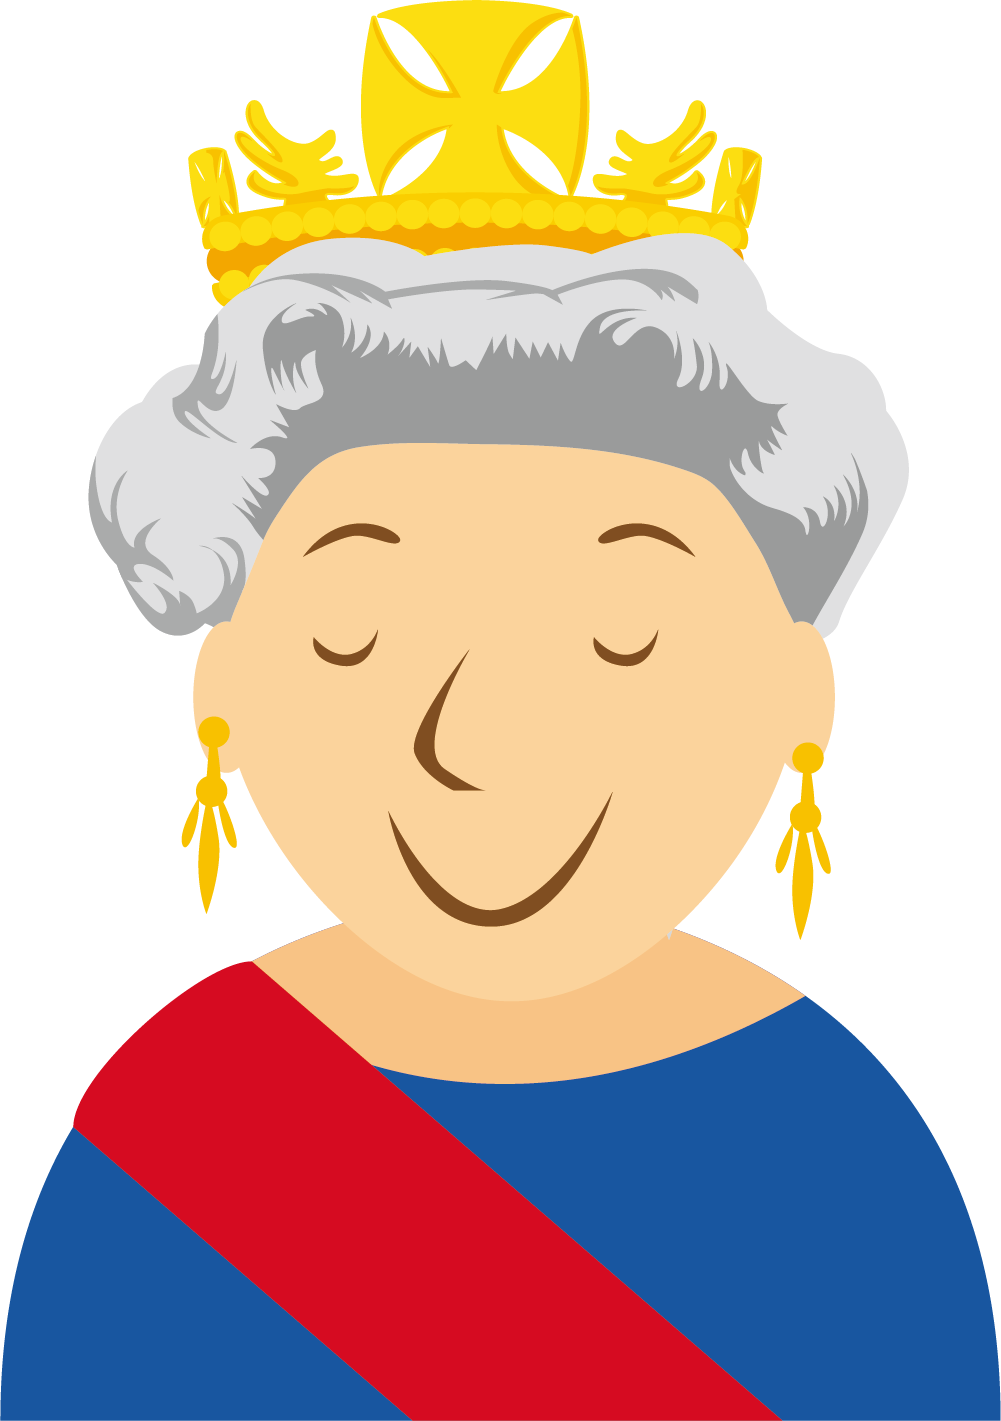 Queen clipart happy king. London cartoon clip art